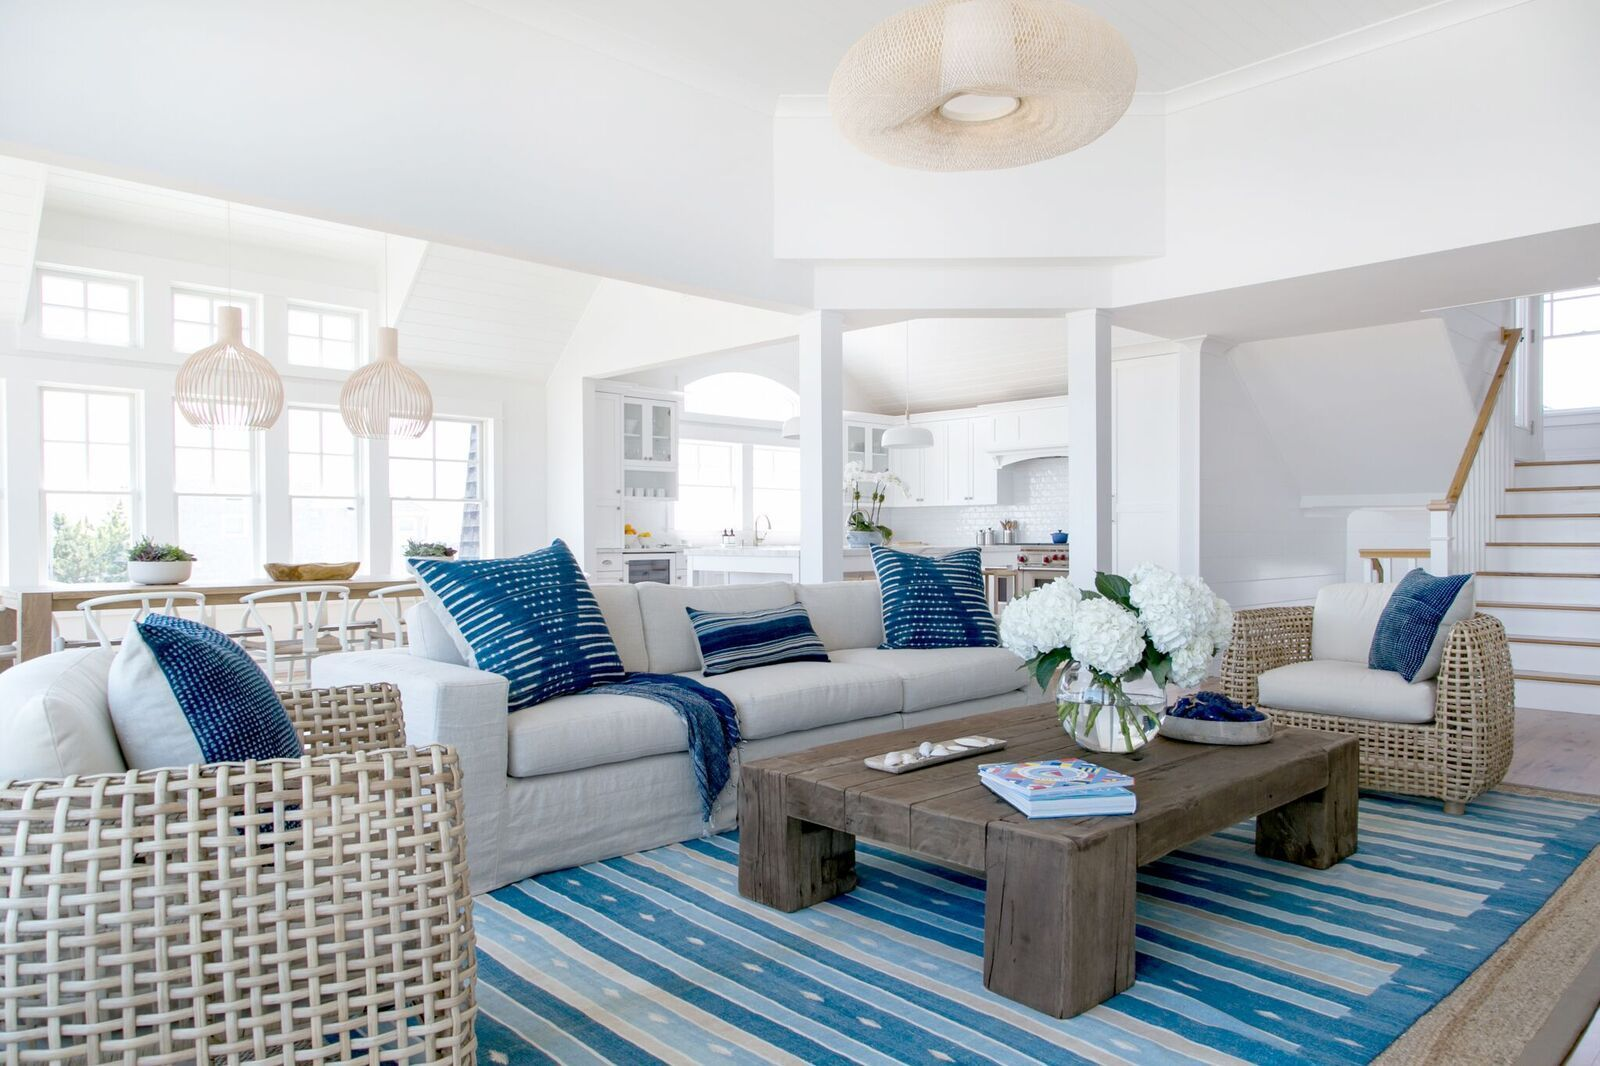 A Blue and White Nautical-Themed Living Room with Lots of Natural ...